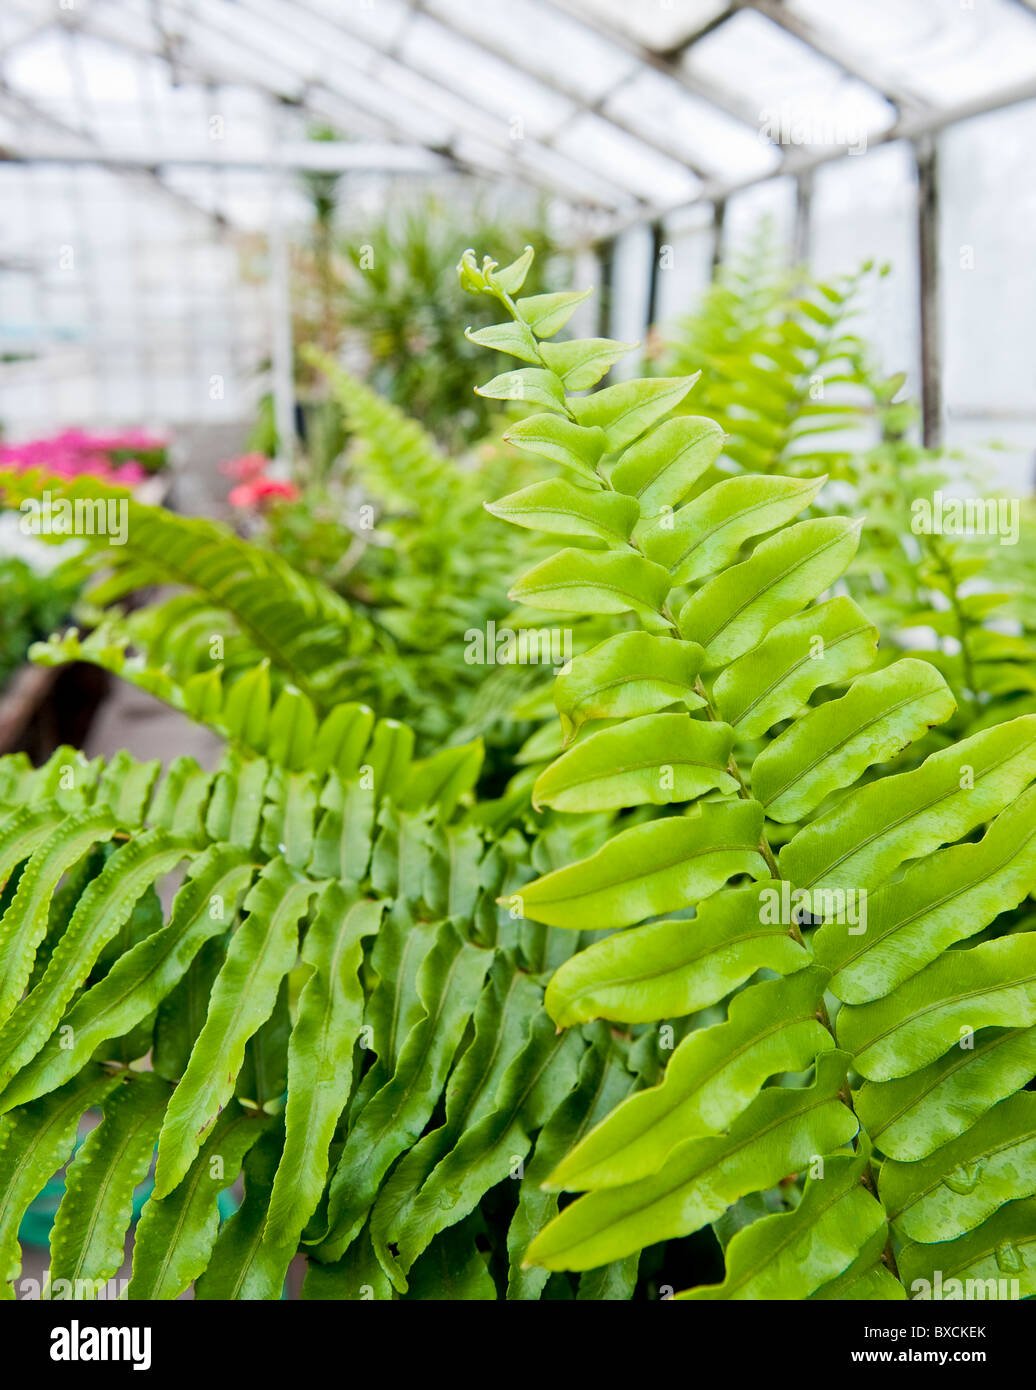 Ferns in a public park greenhouse - Stock Image